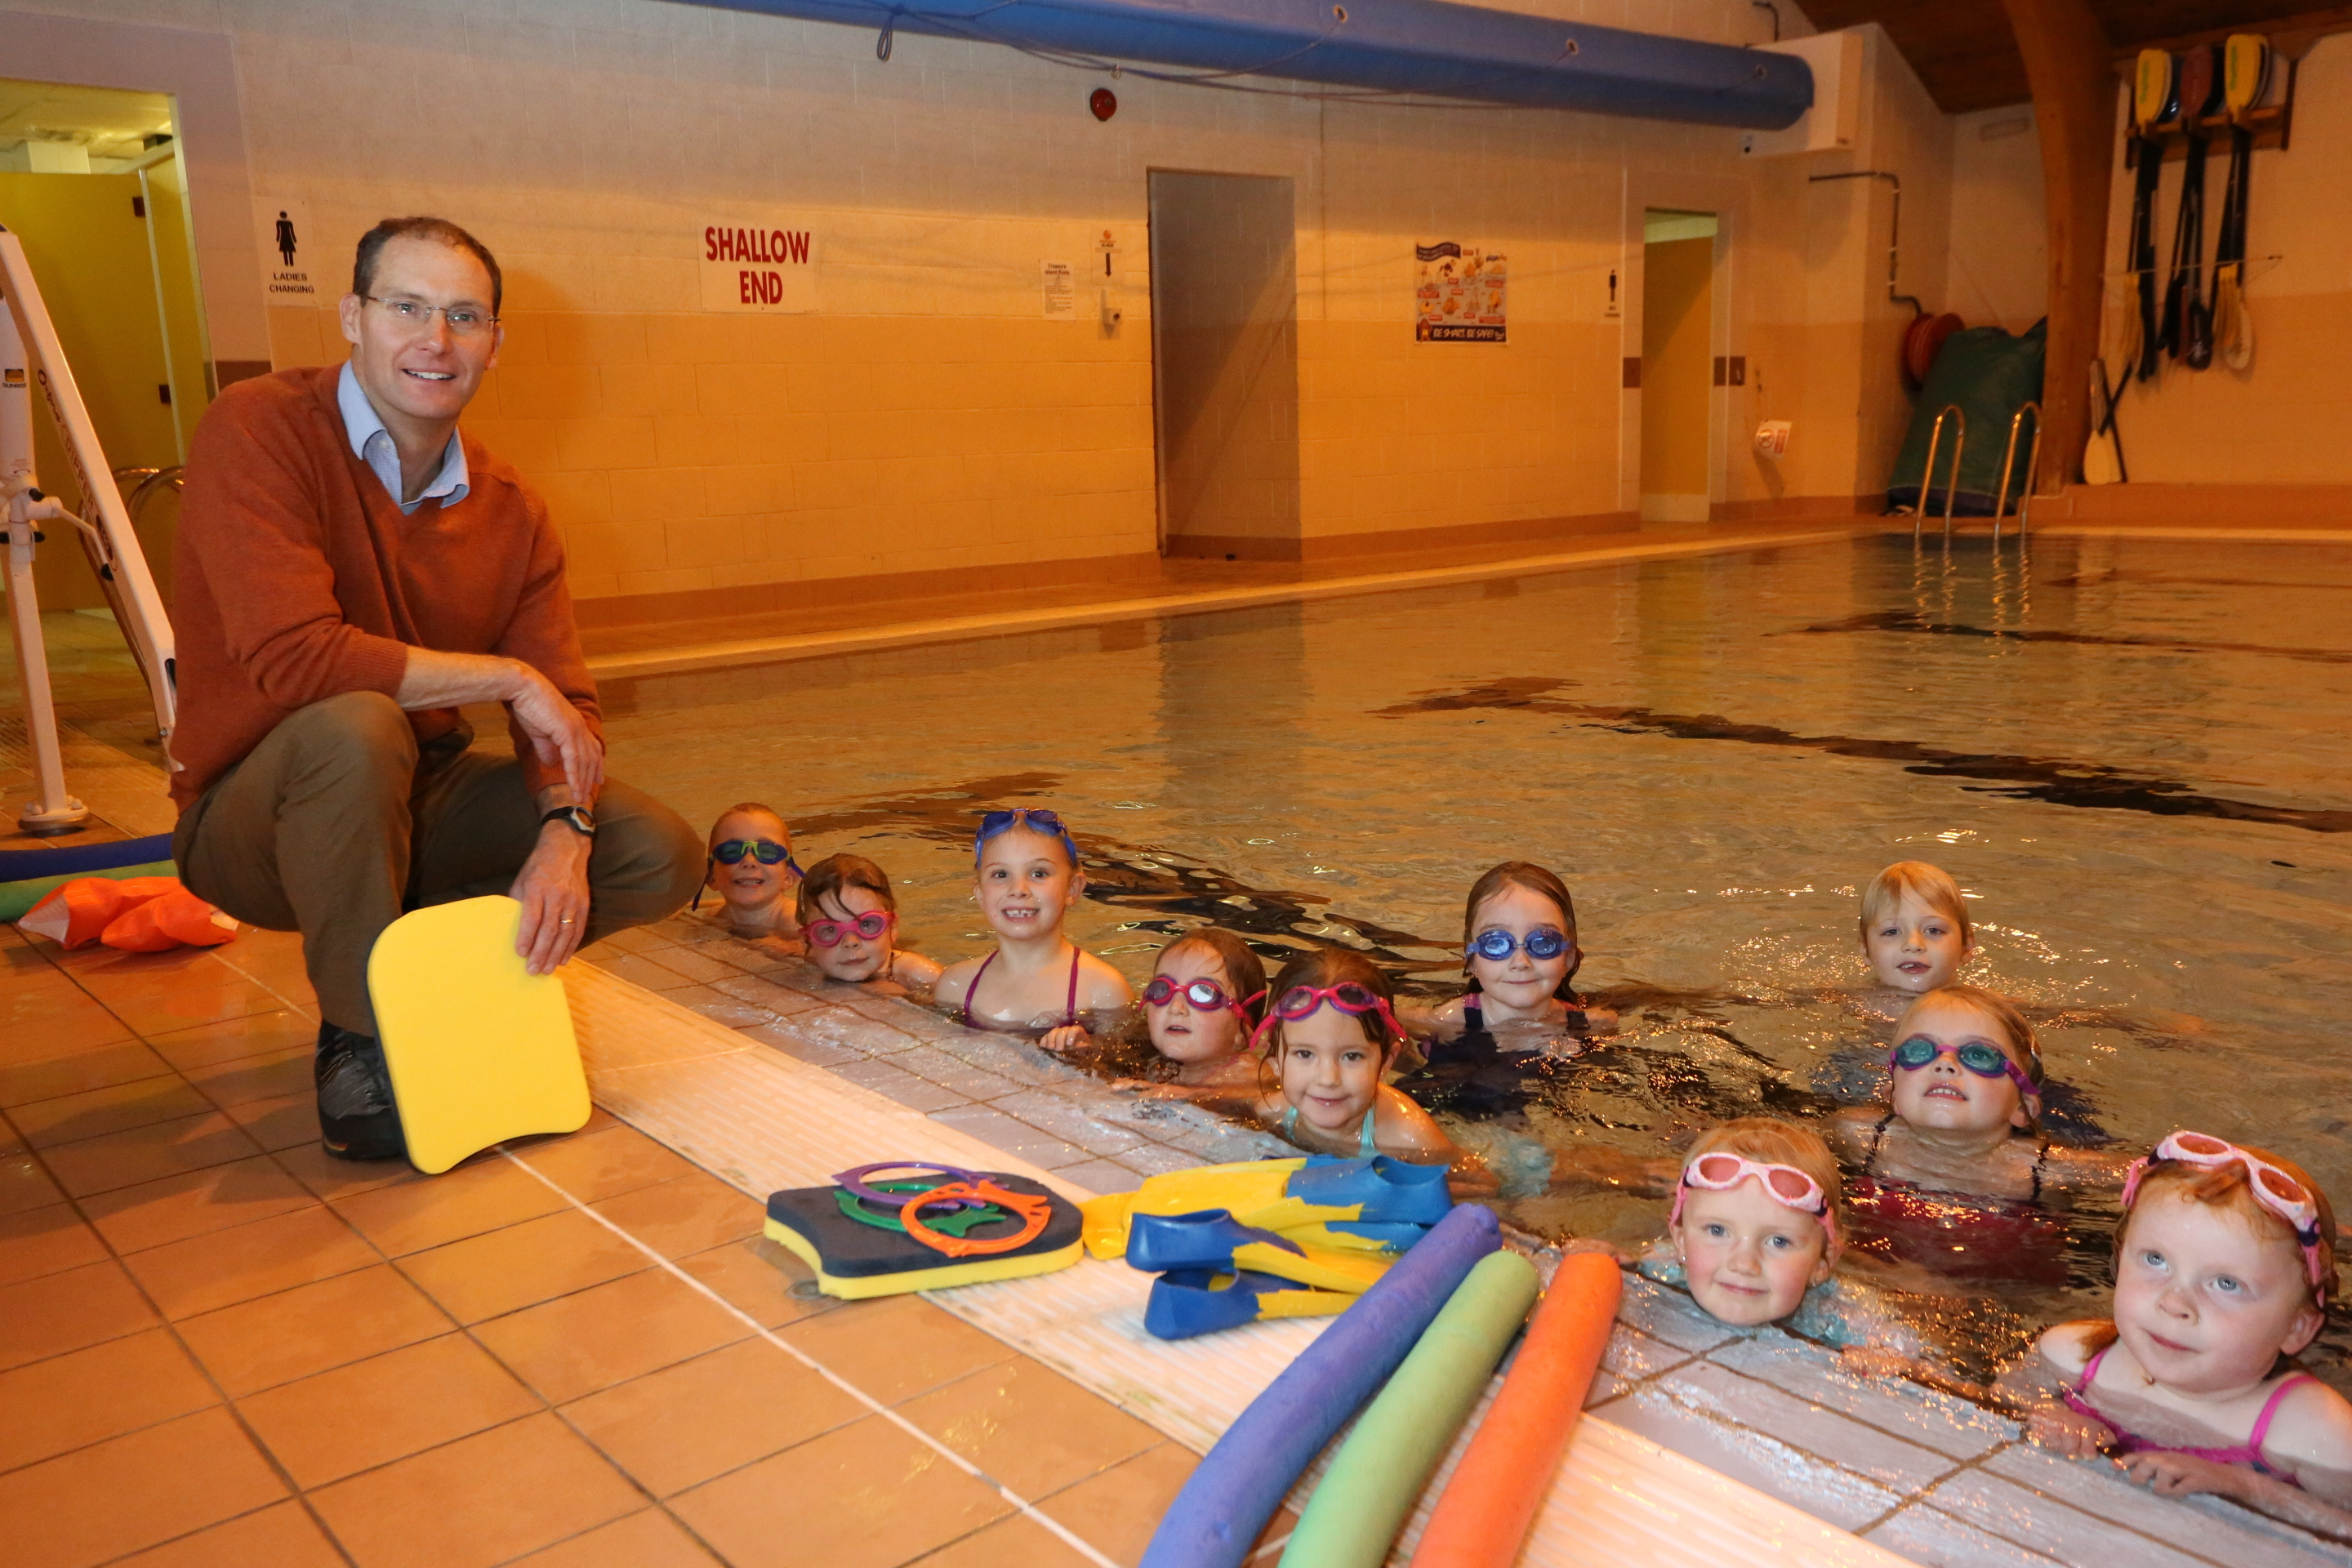 Pool manager Brian O'Rourke with children taking part in a swimming lesson at Mallaig Swimming Pool. By Caroline MacKinnon